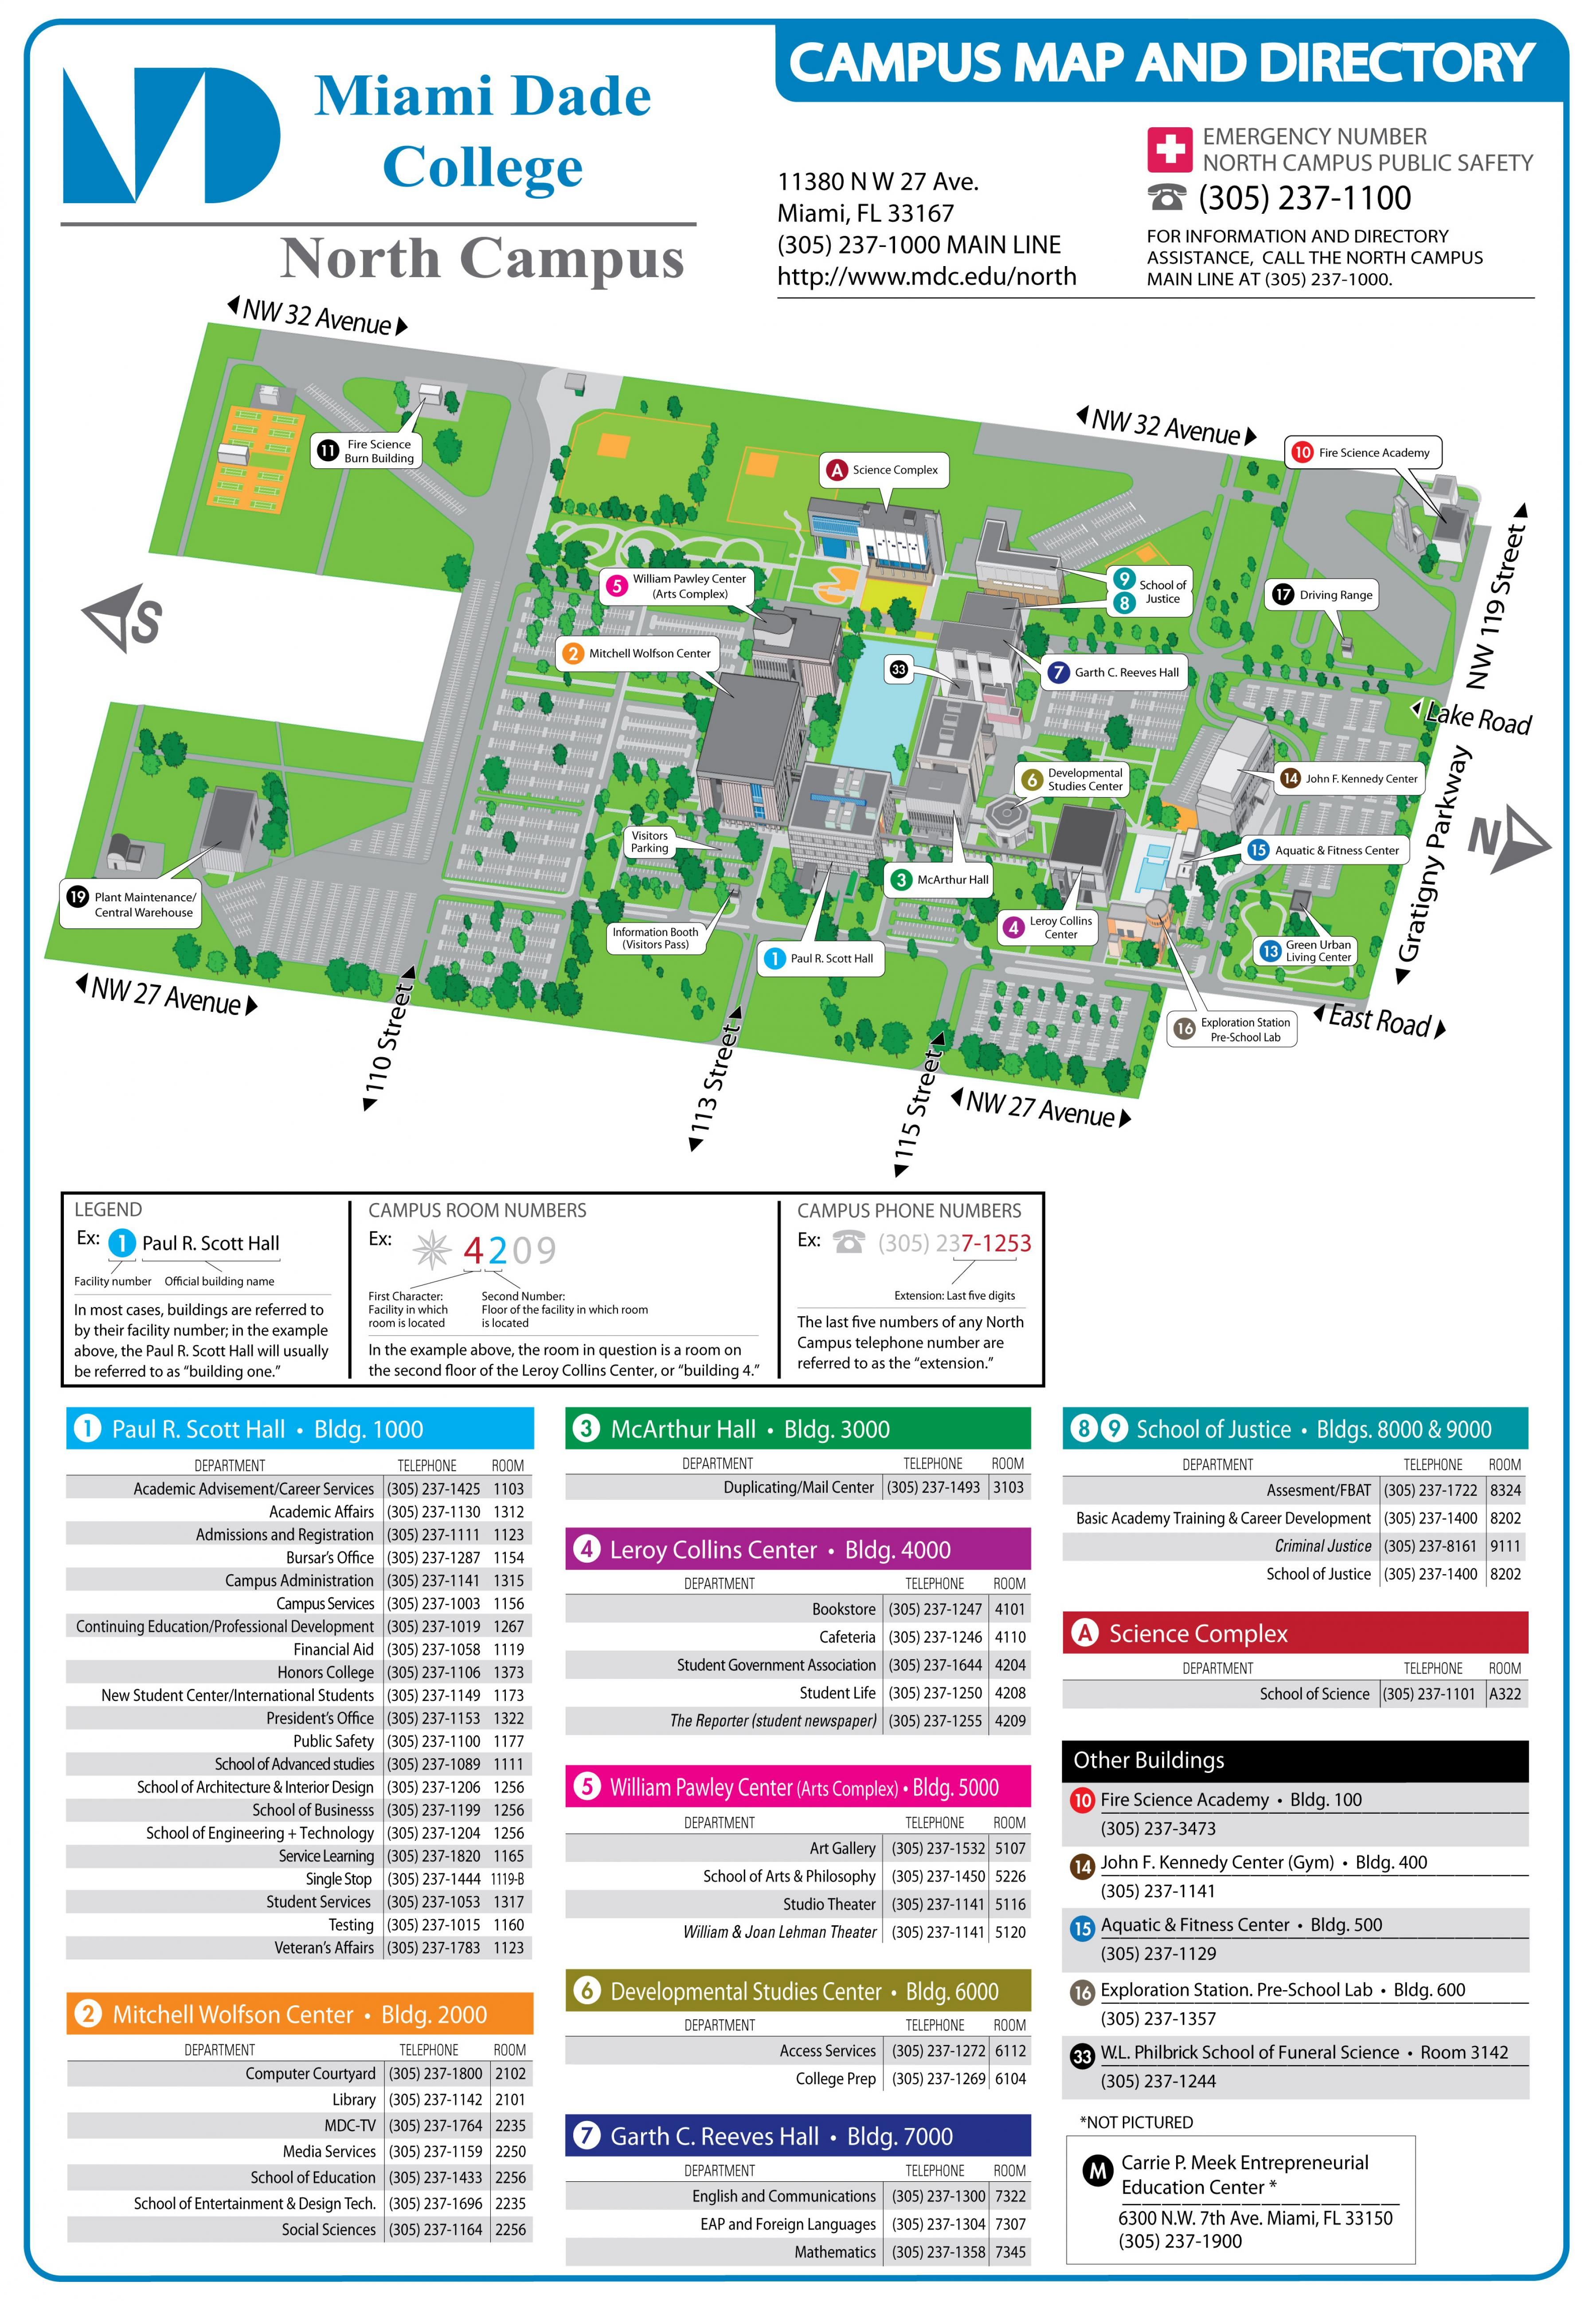 Campus Maps Campus Maps Western Michigan University - Images of Home ...